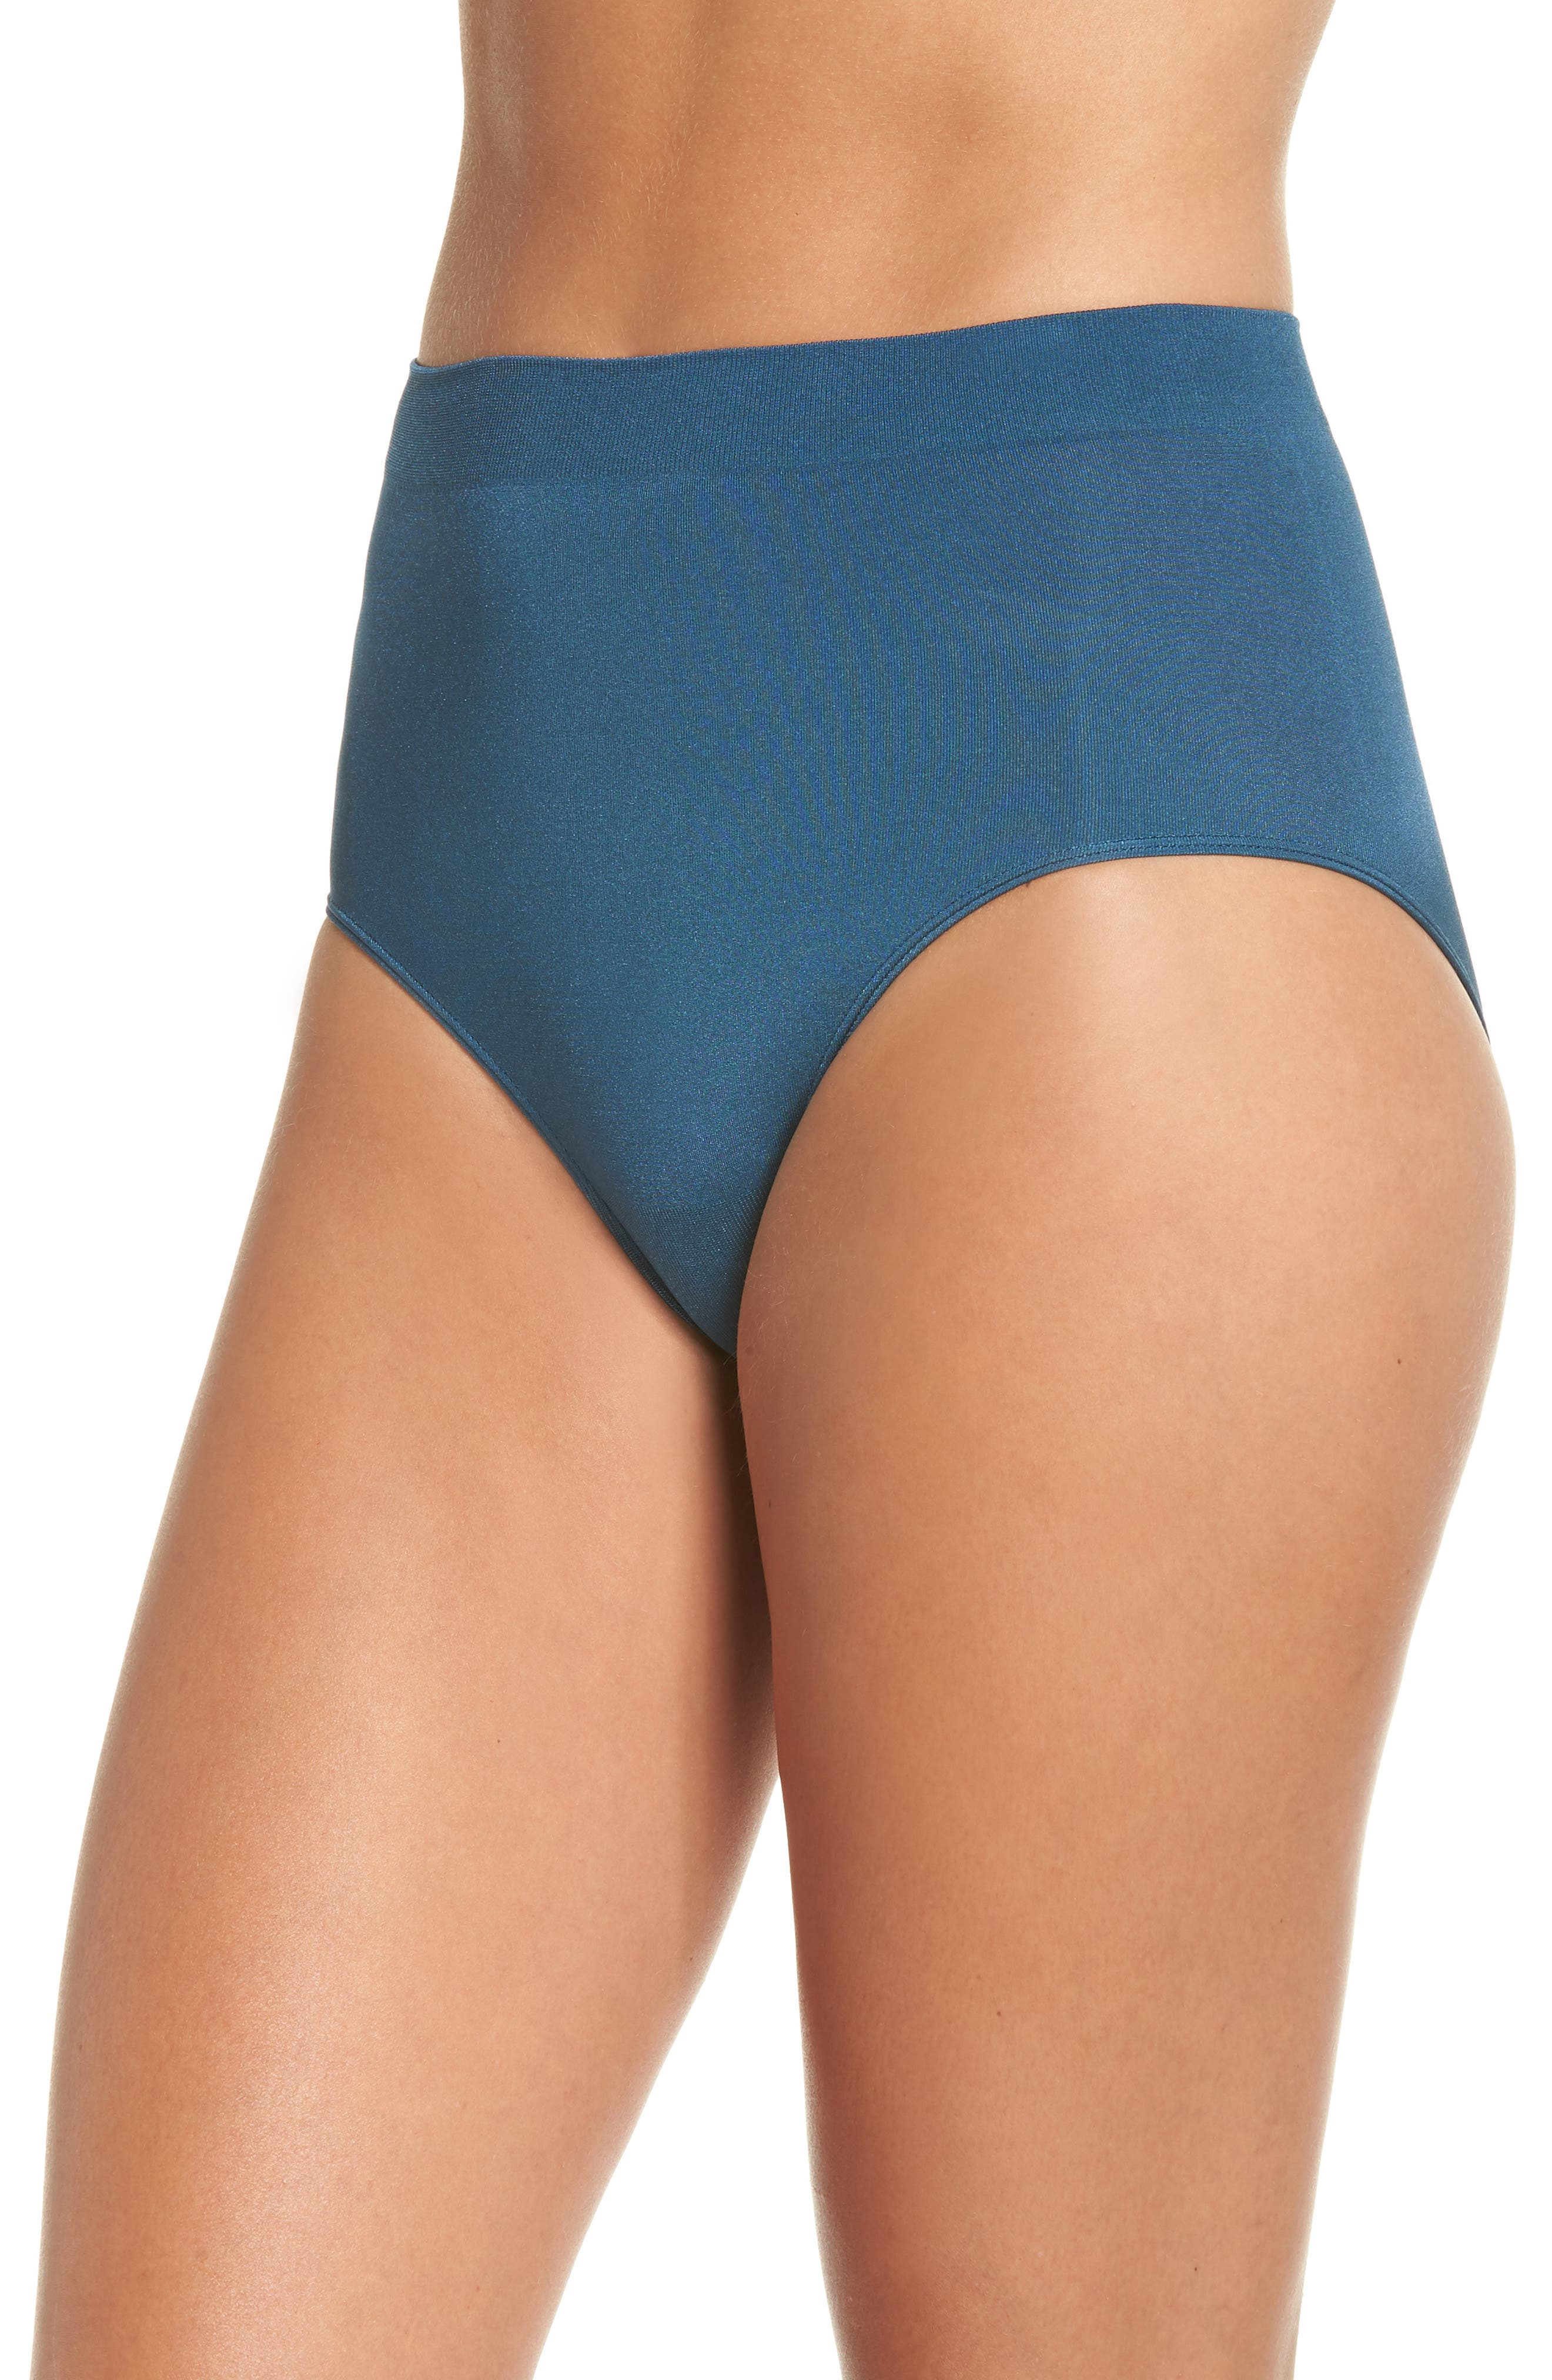 B Smooth Briefs,                             Alternate thumbnail 191, color,